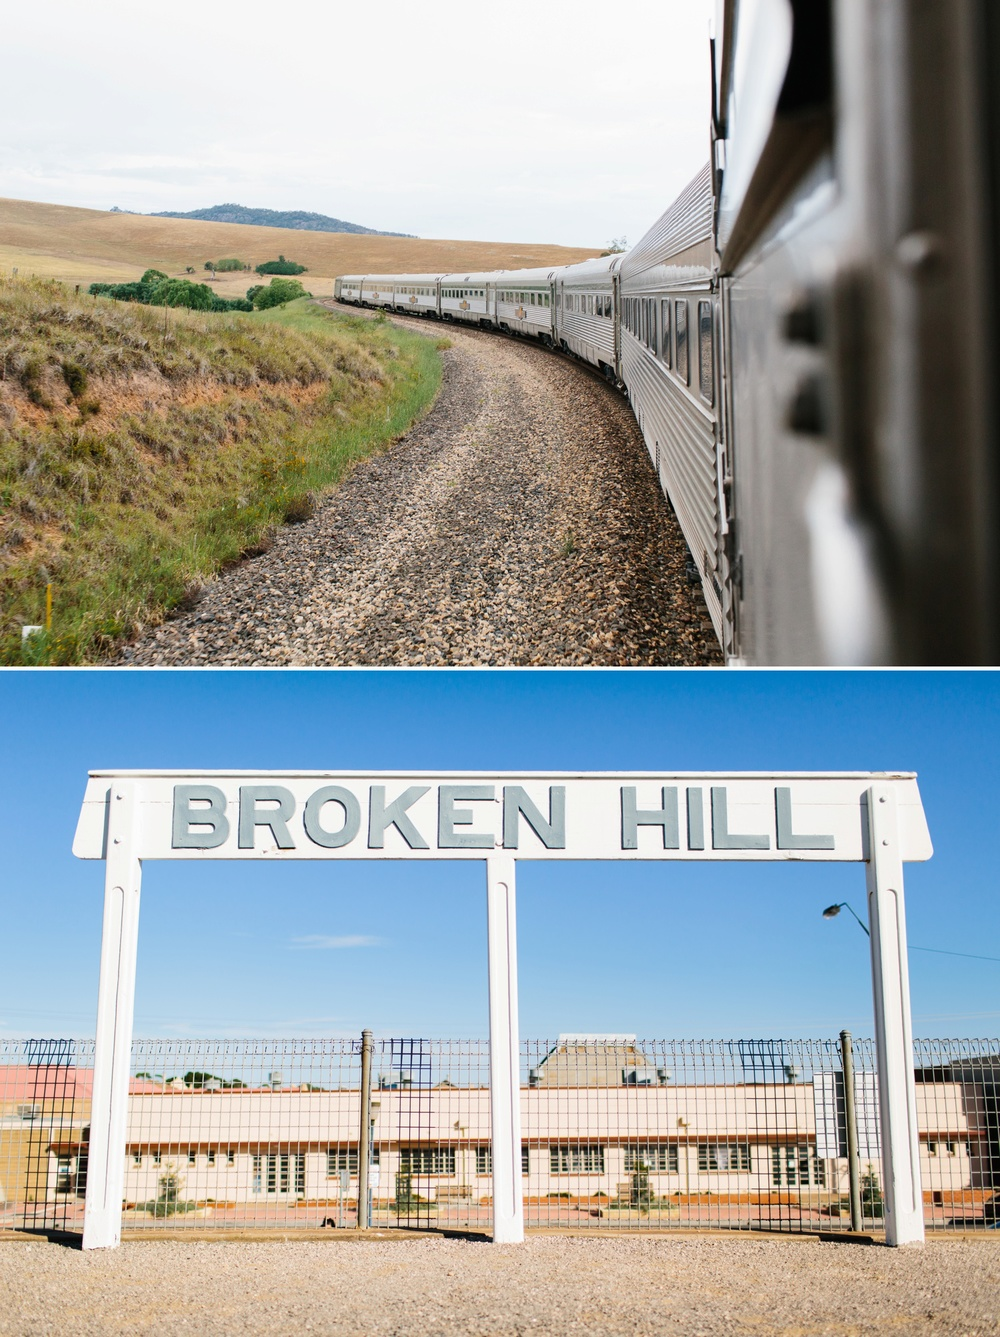 cameron-zegers-photographer-seattle-travel-australia-great-southern-rail_0005.jpg